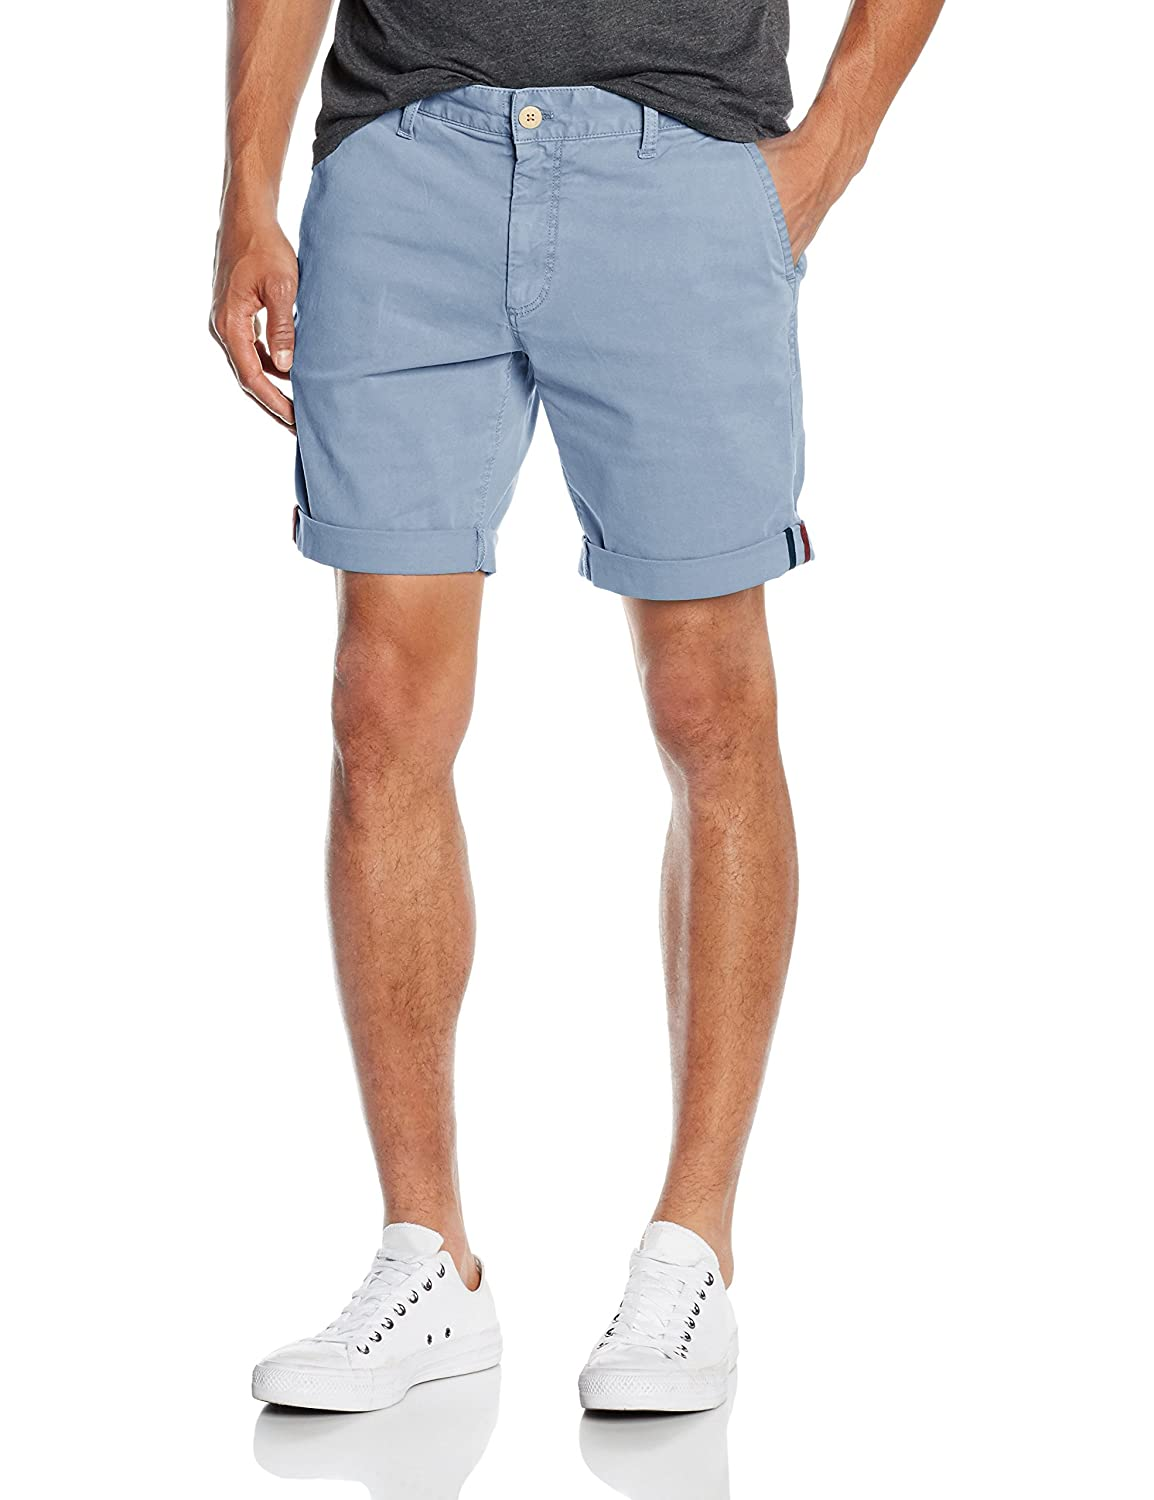 Hilfiger Denim Herren Original Straight Short 1 Ftst Gd